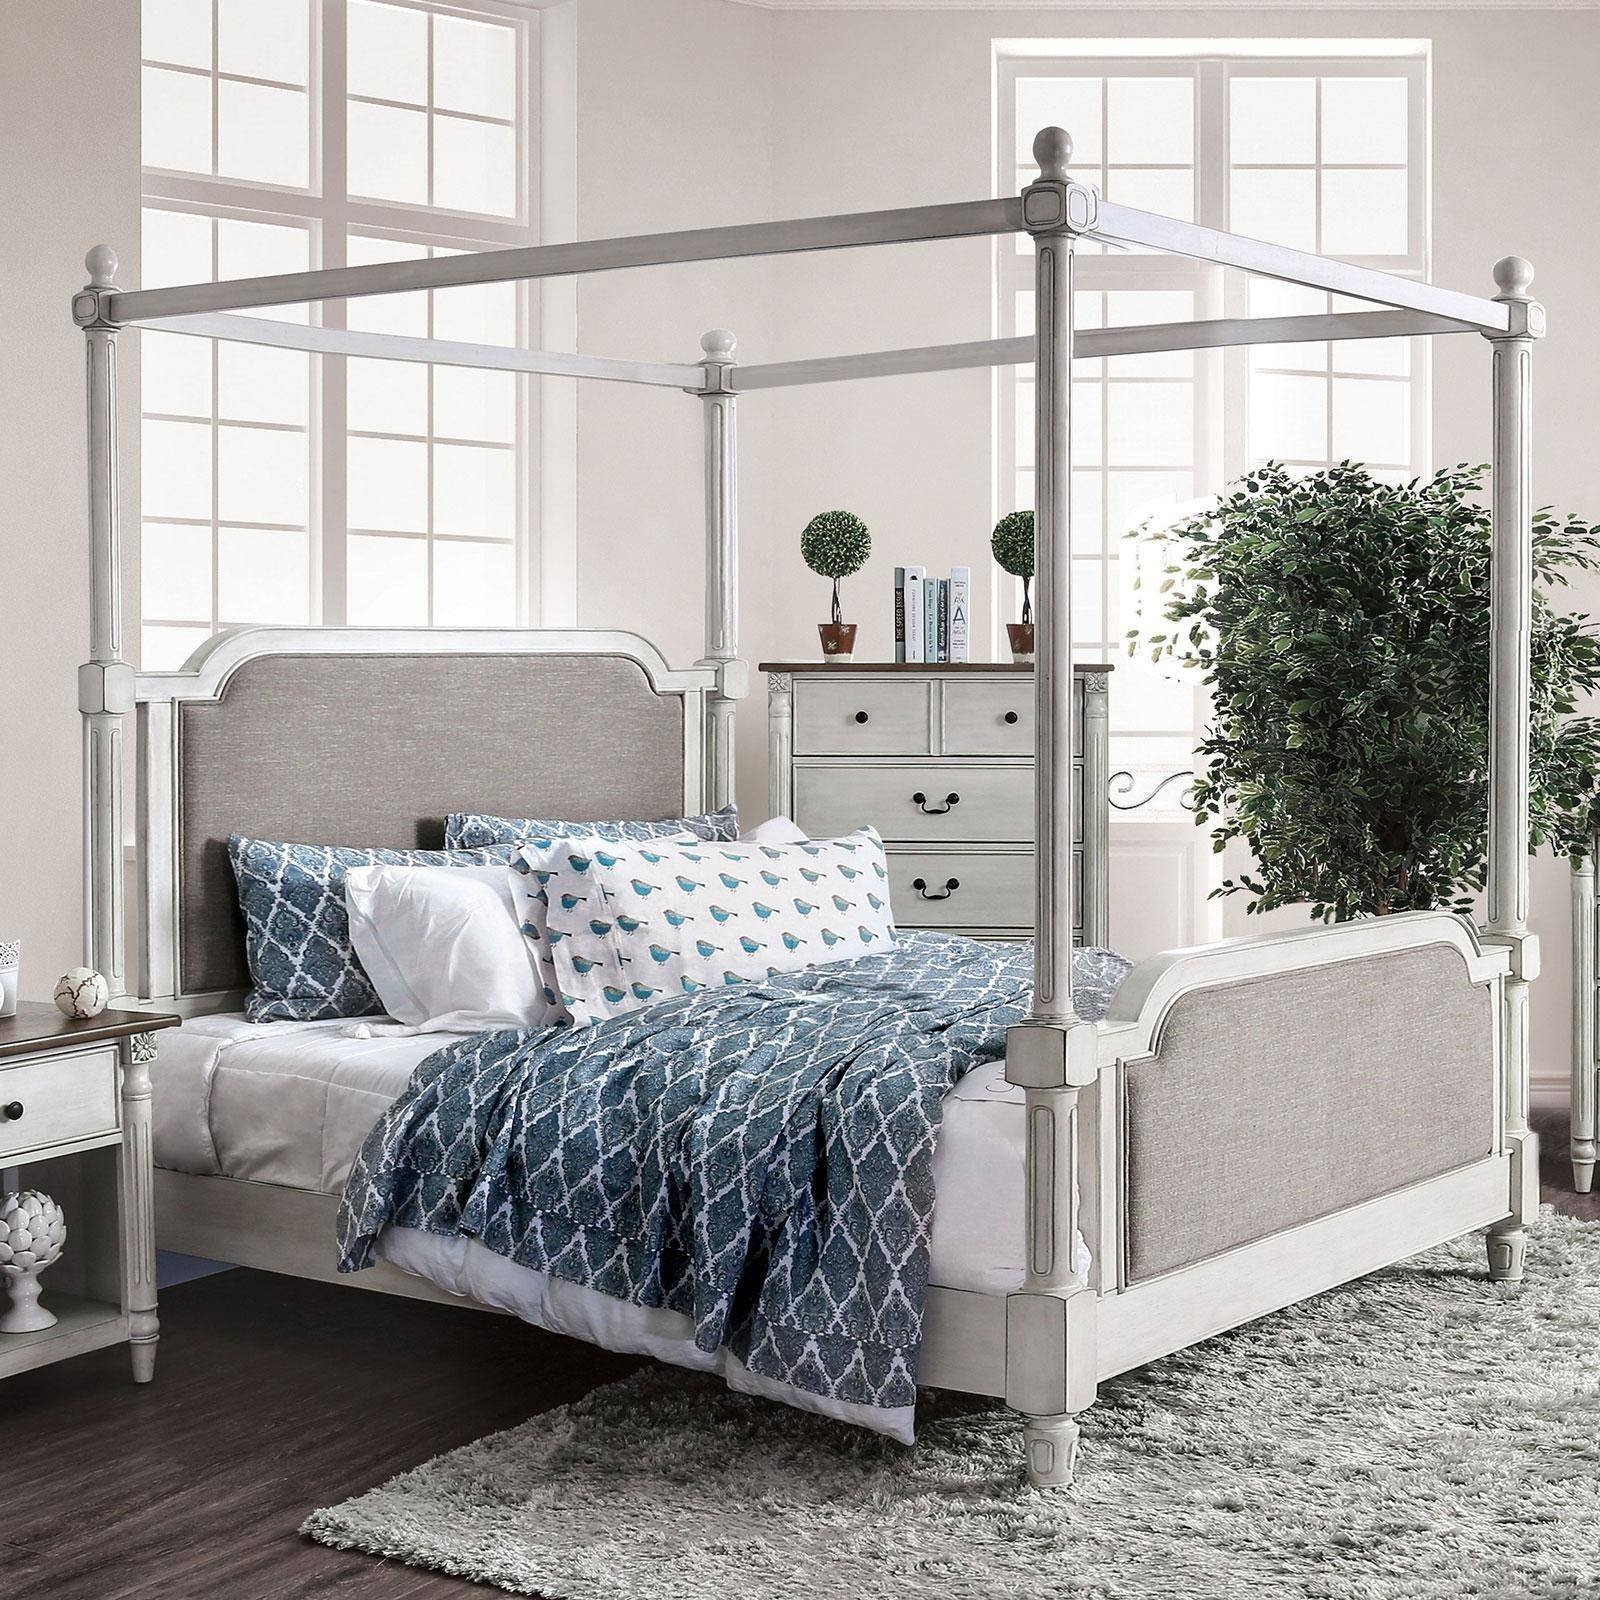 King Size Canopy Bedroom Set Inspirational Transitional Fabric Upholstery Cal King Canopy Bed In White Lansford Foa Group